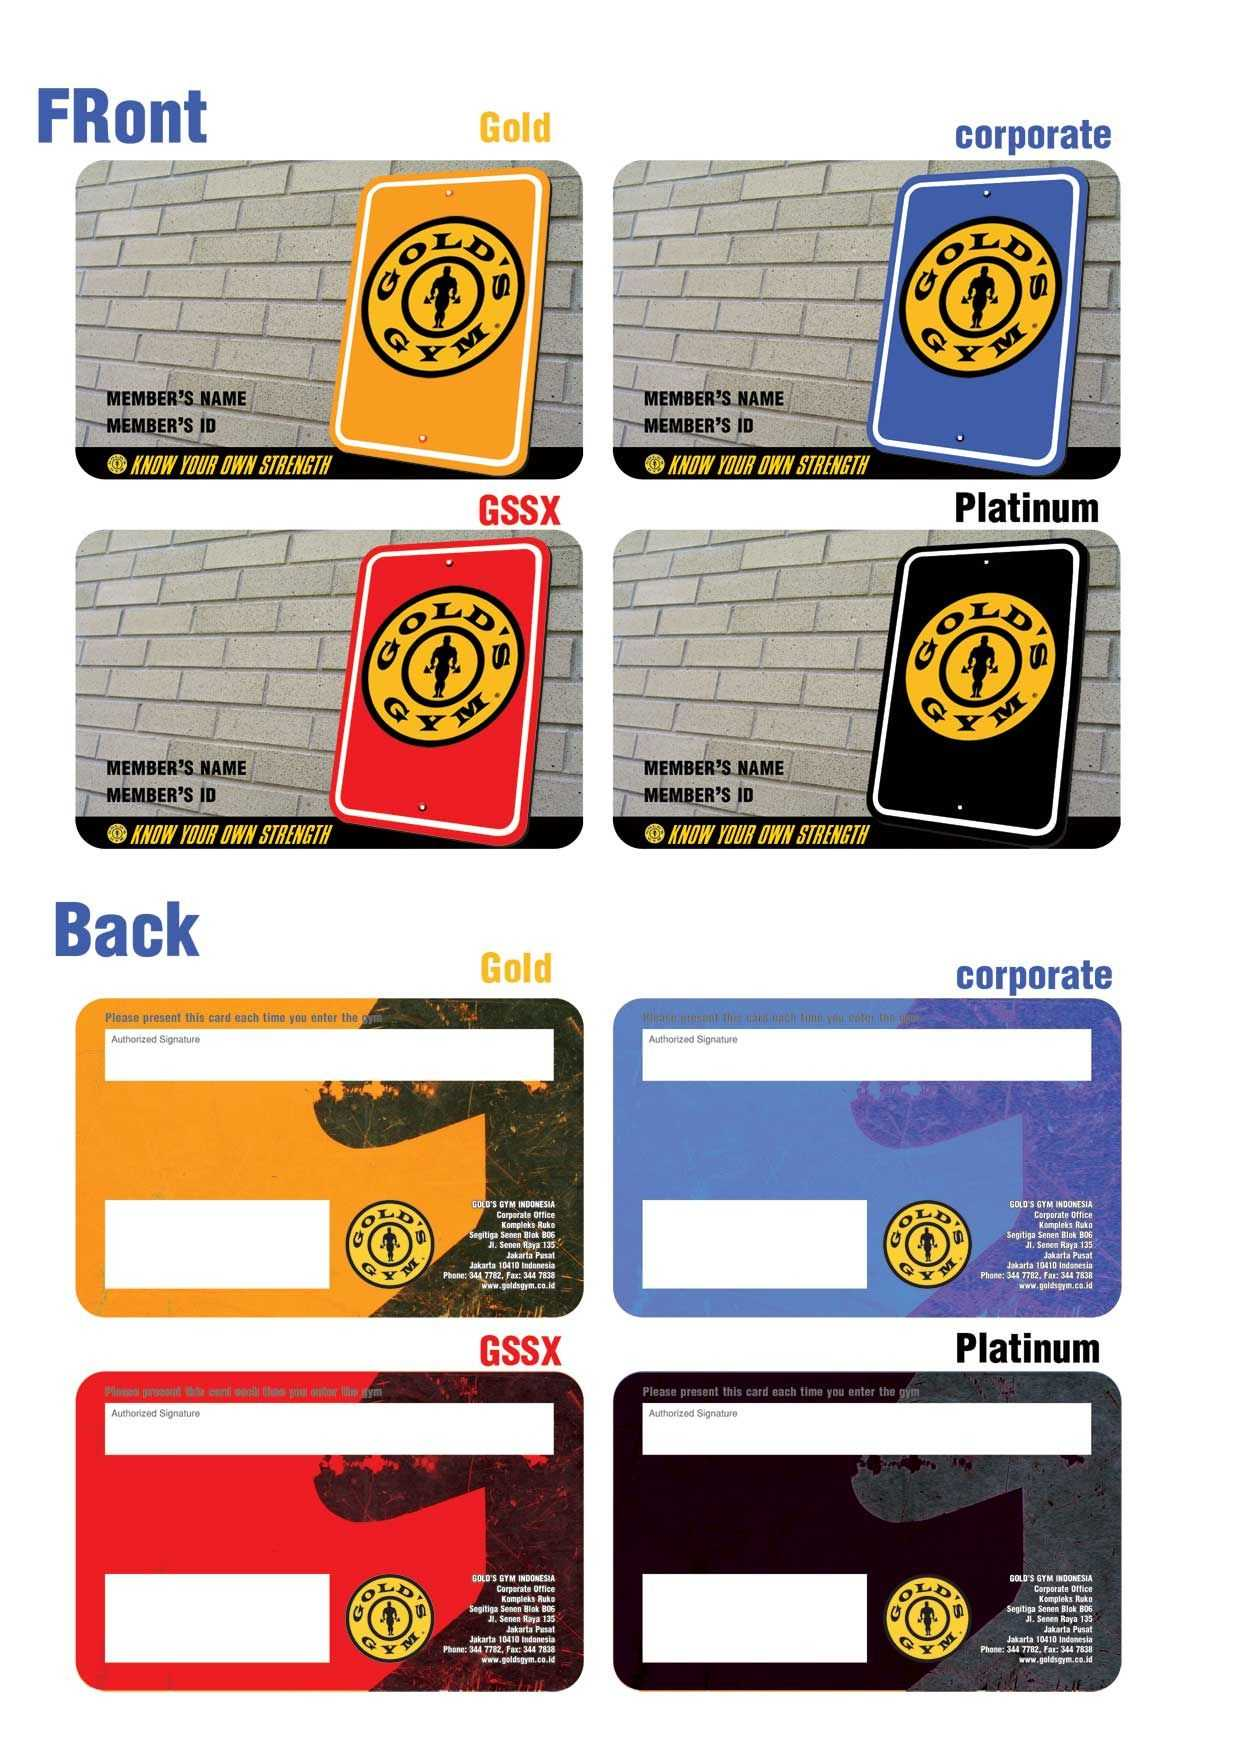 Gold Gym Membership Card intended for Gym Membership Card Template